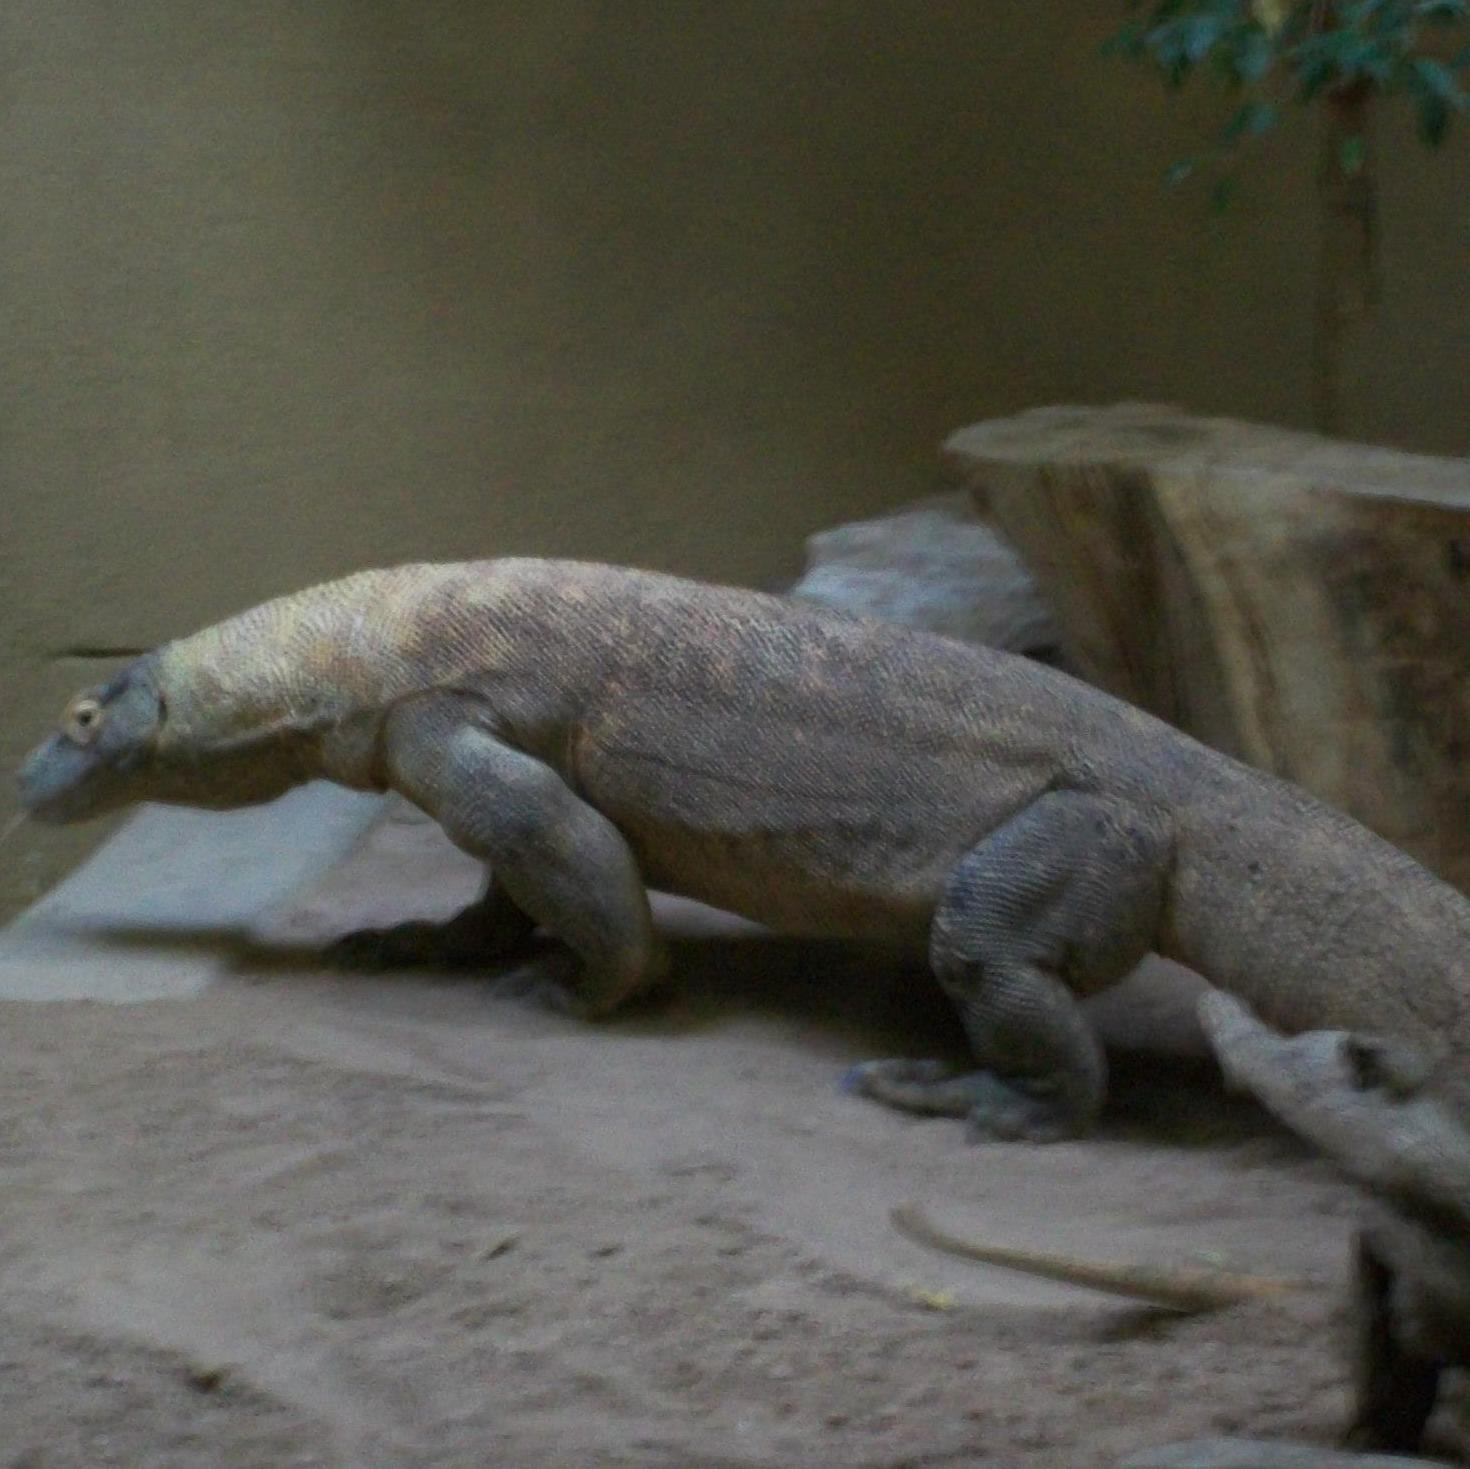 KomodoDragon201 photo